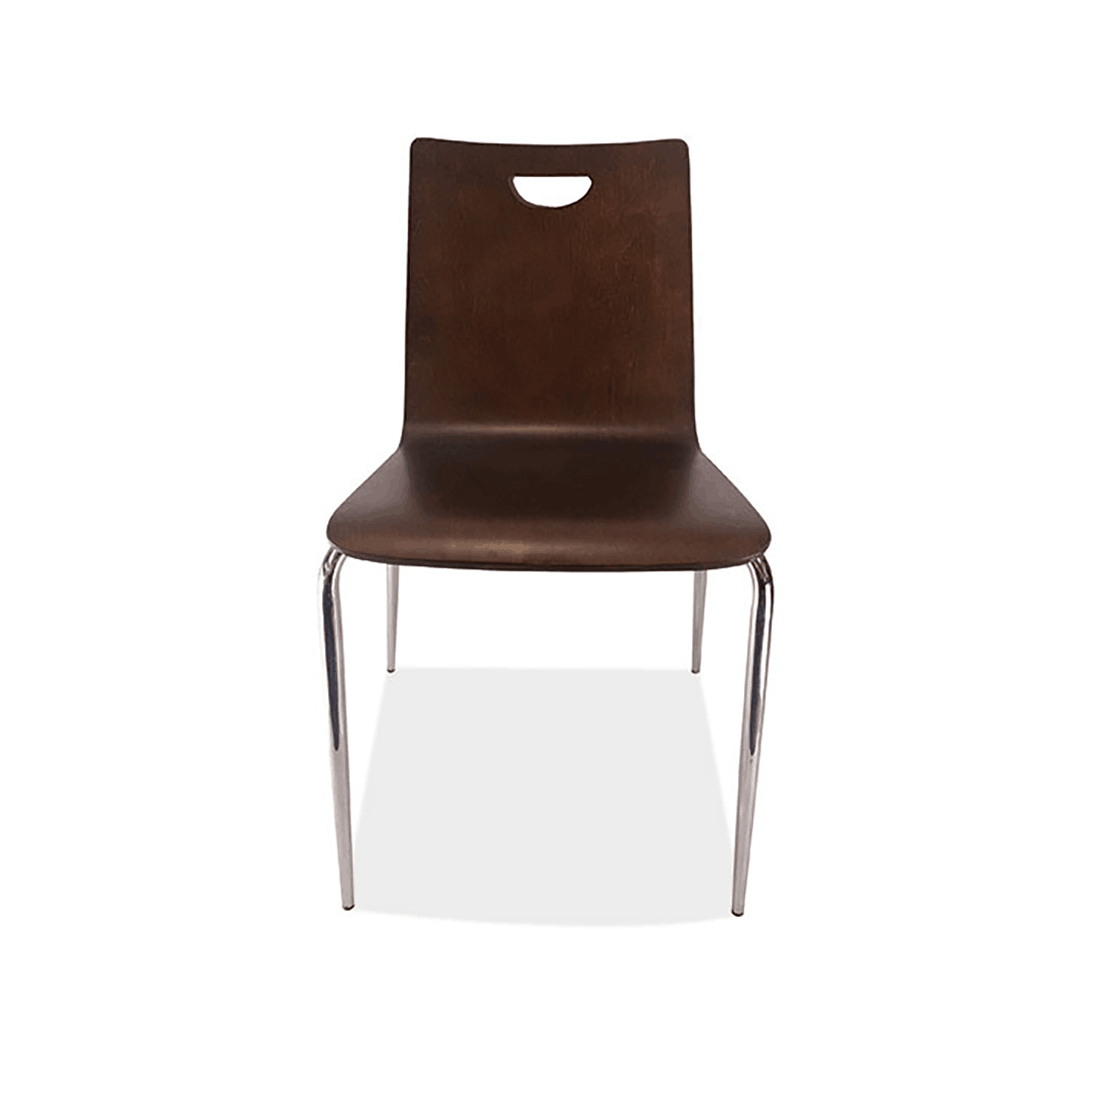 COE Bleecker Cafeteria Chair Wooden back with hand hole armless